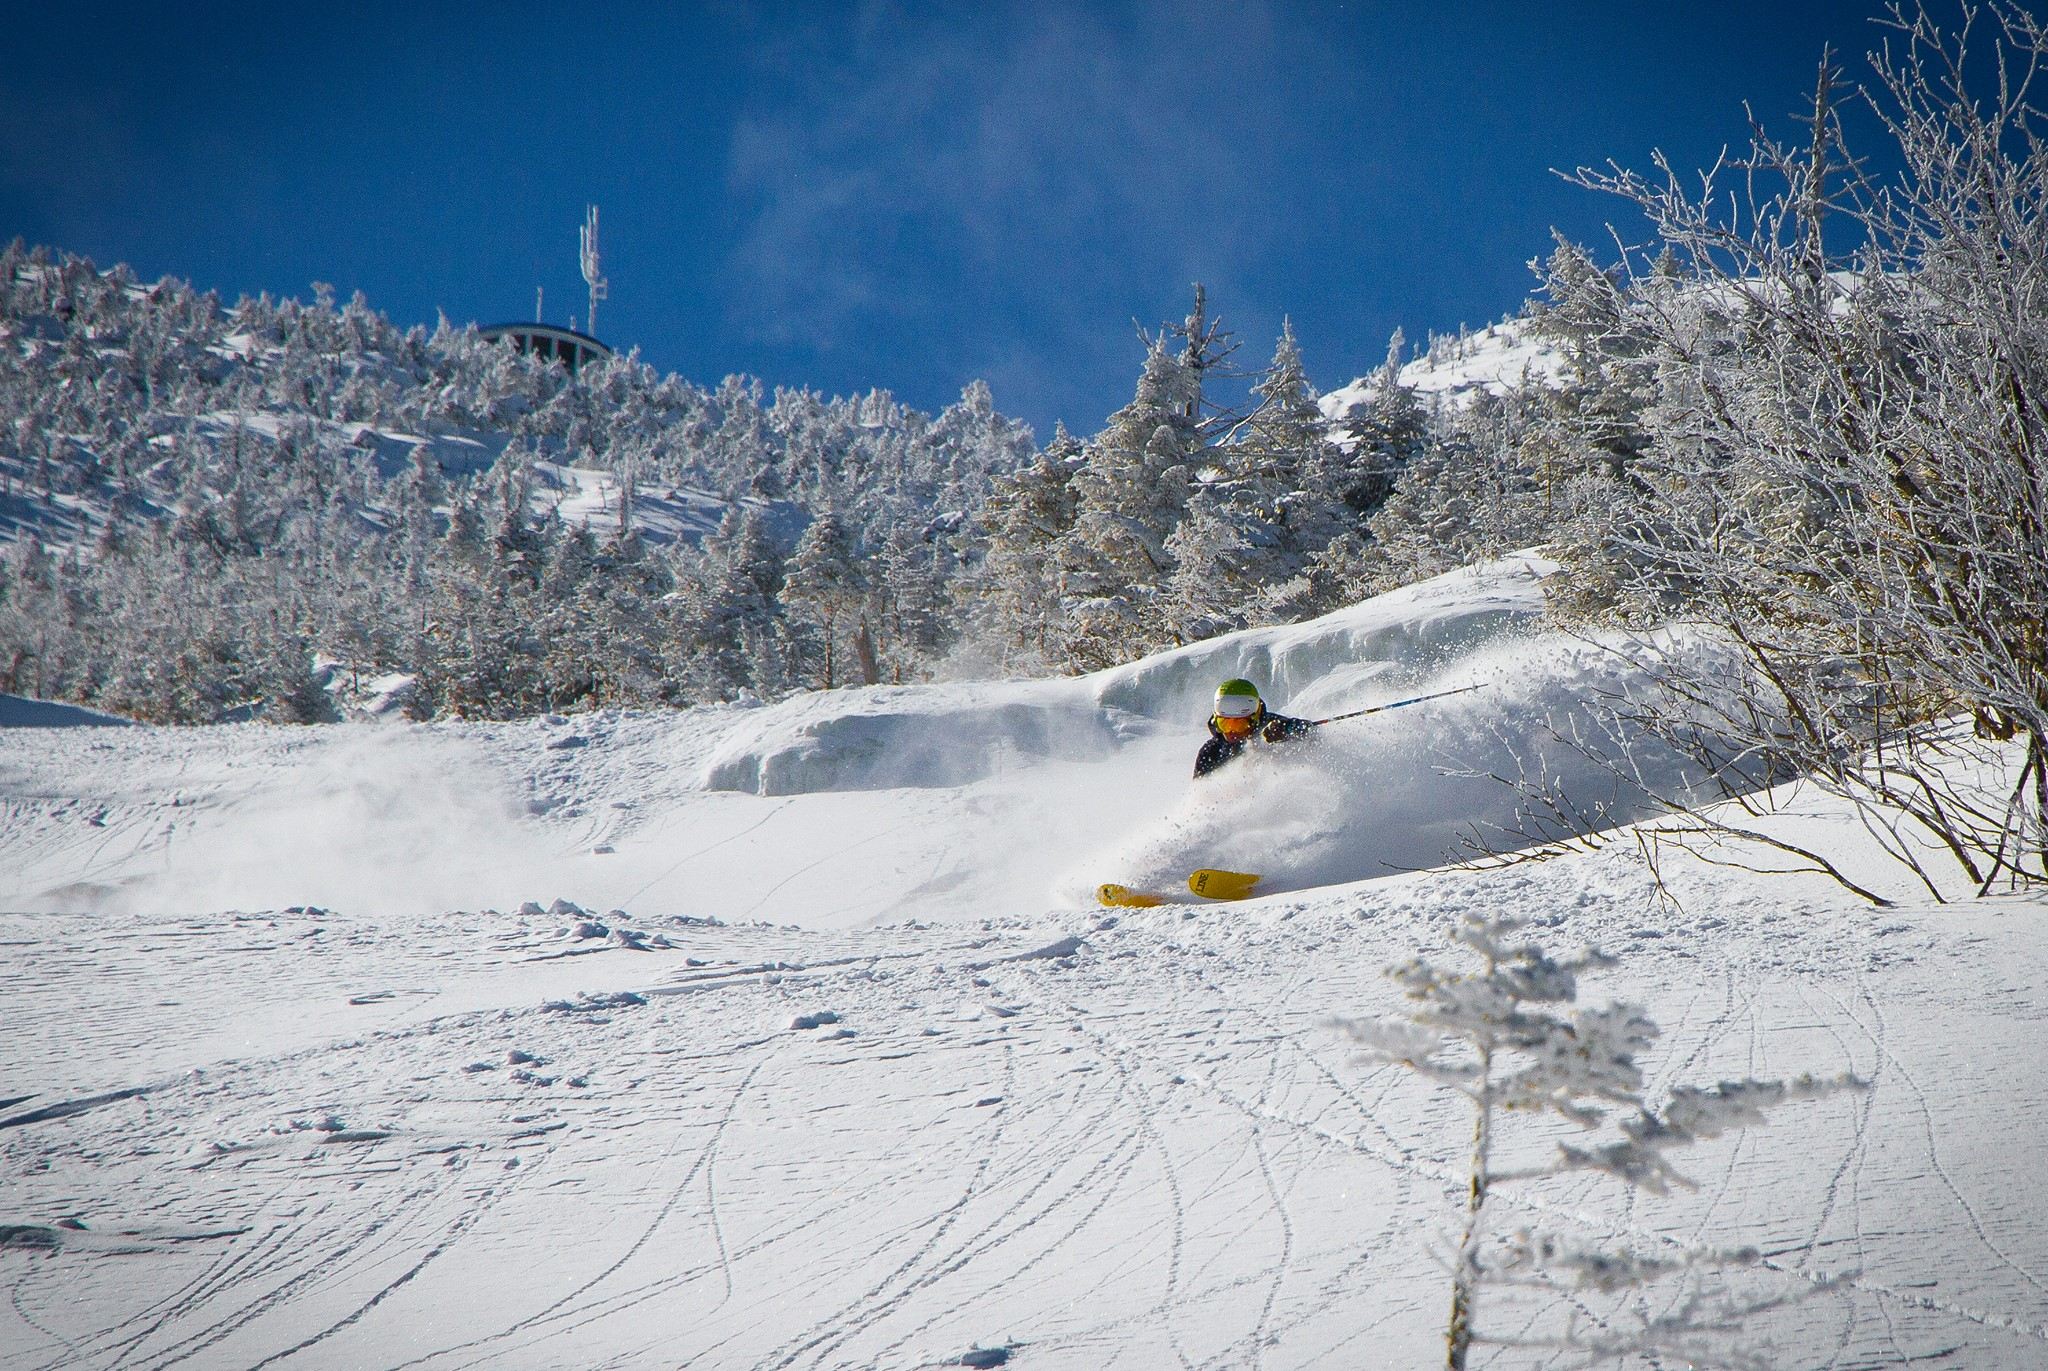 It's coming... mid-season at Whiteface.  Whiteface